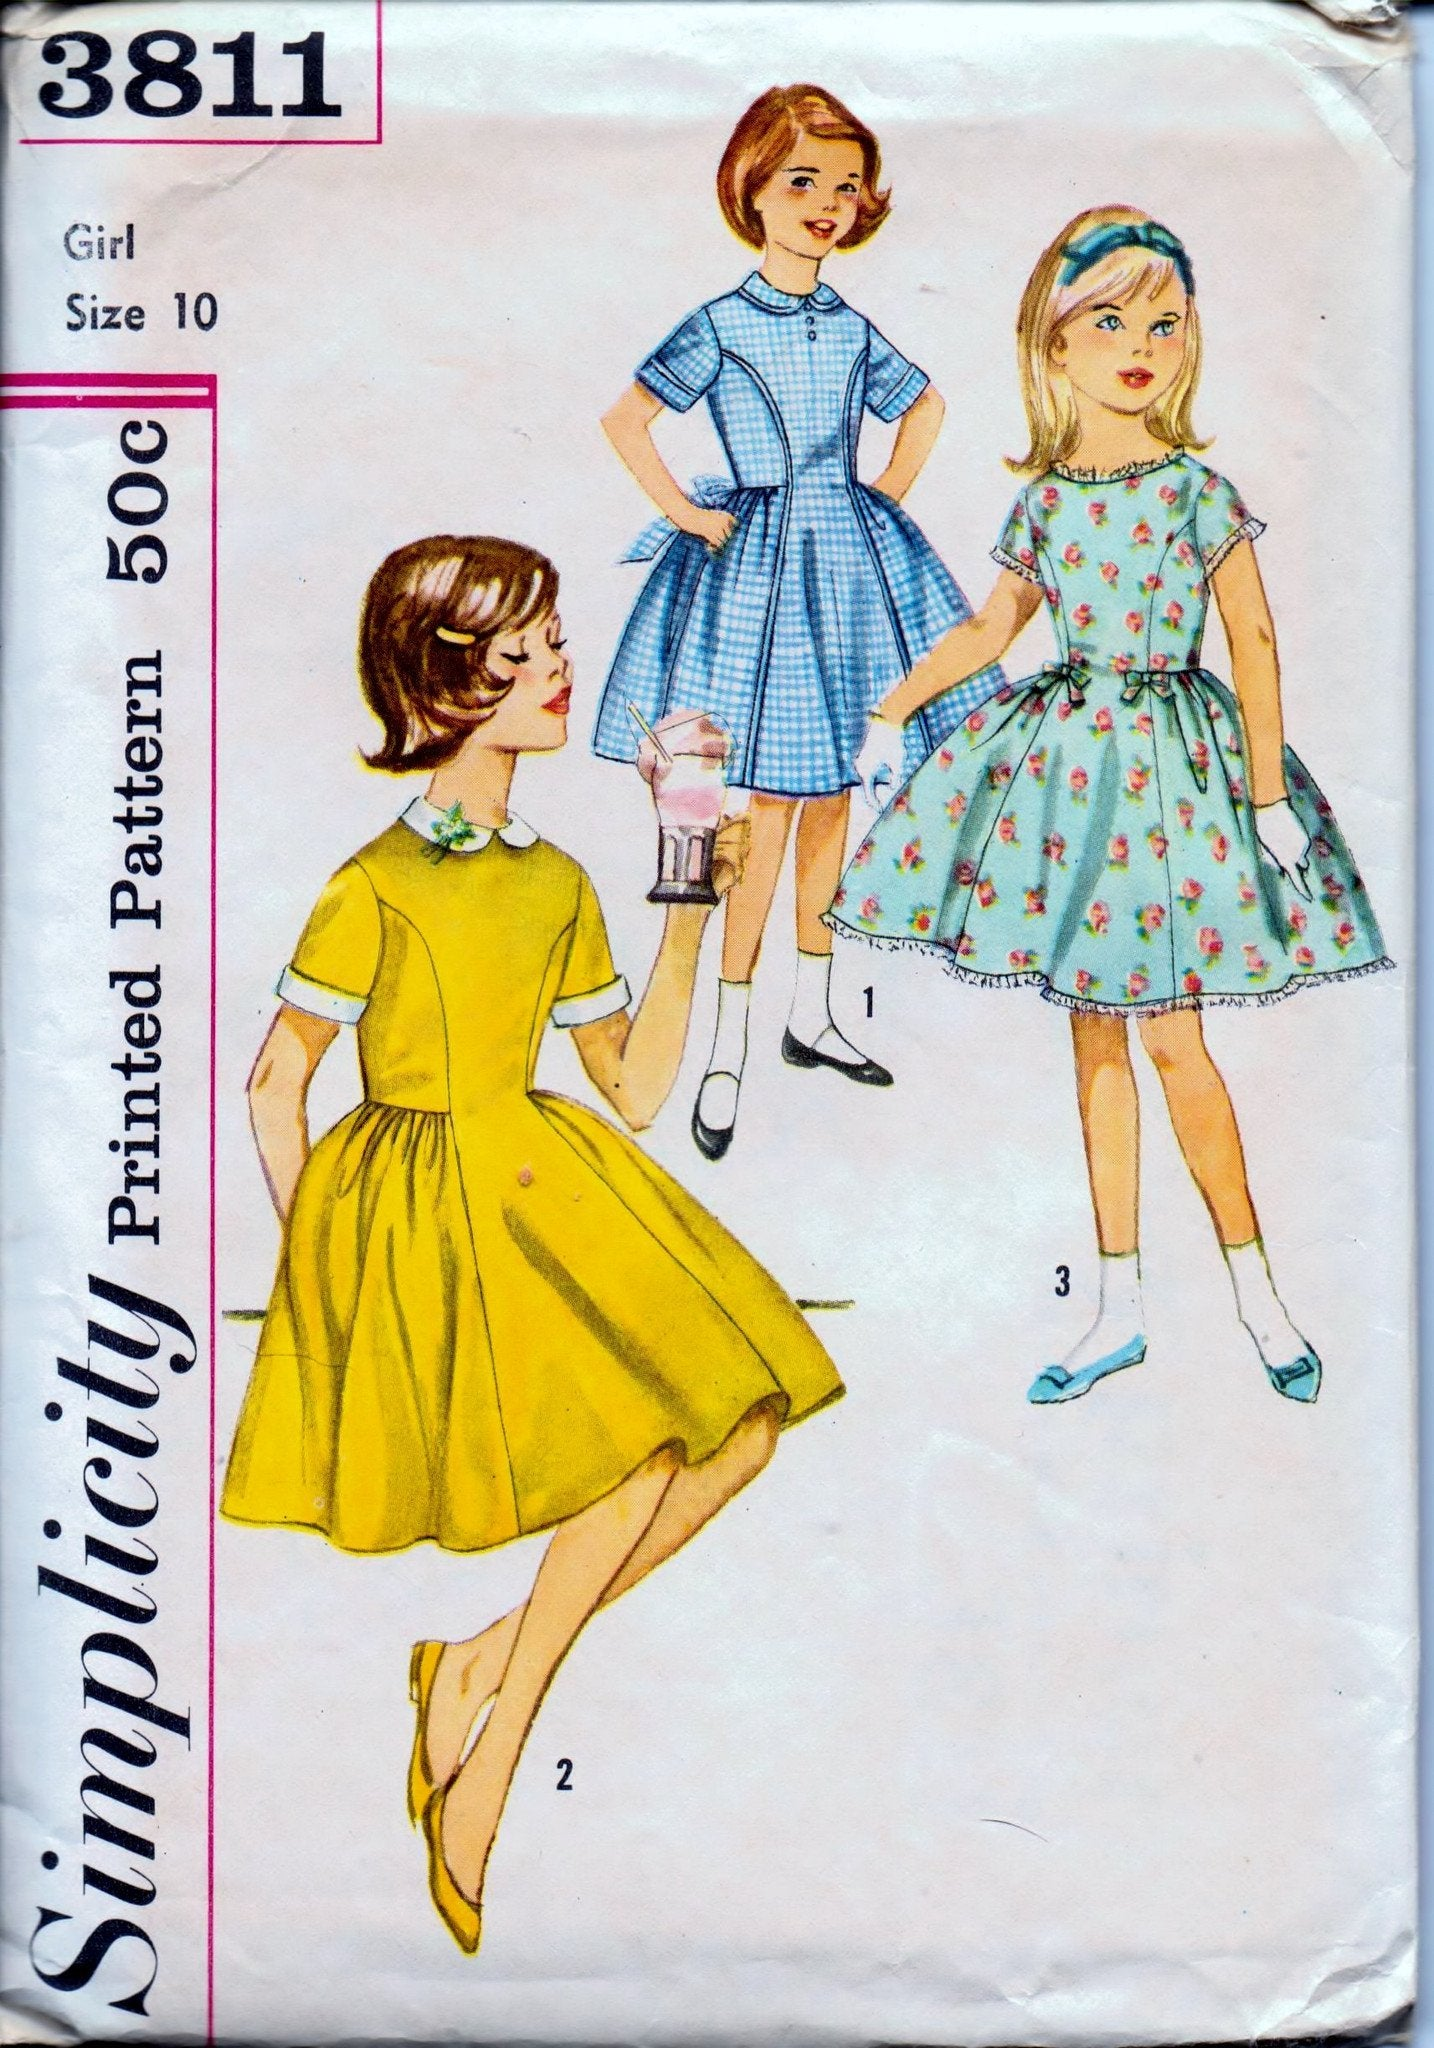 Simplicity 3811 Young Girls One-Piece Party Dress Detachable Collar Vintage 1960's Sewing Pattern - VintageStitching - Vintage Sewing Patterns